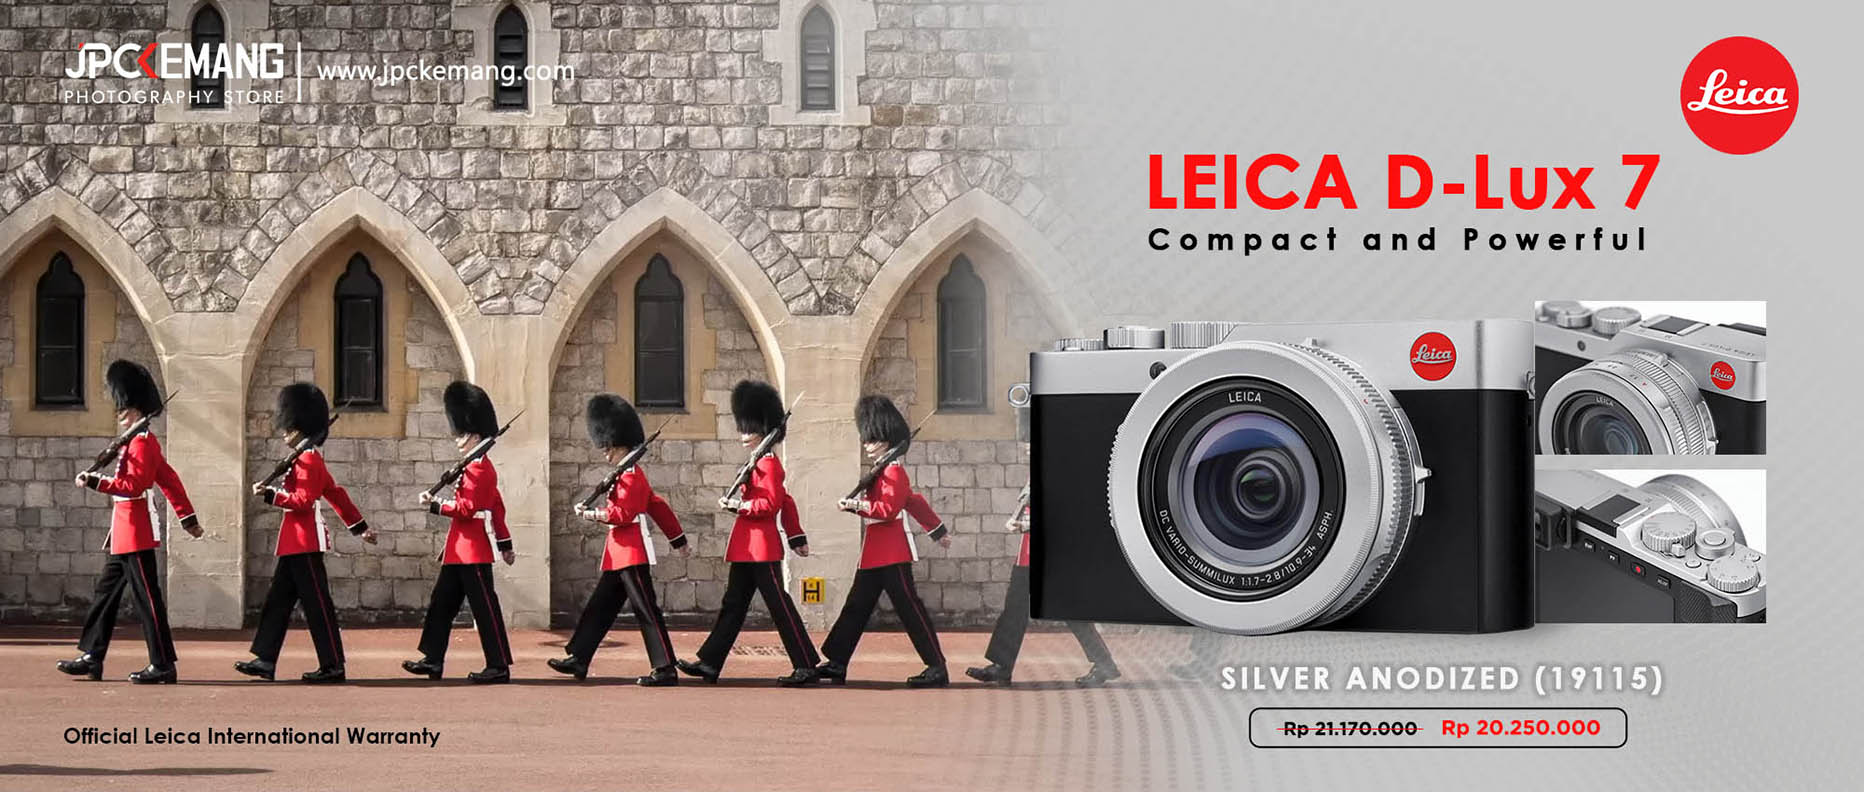 Leica D Lux 7 Silver Anodized (19115)